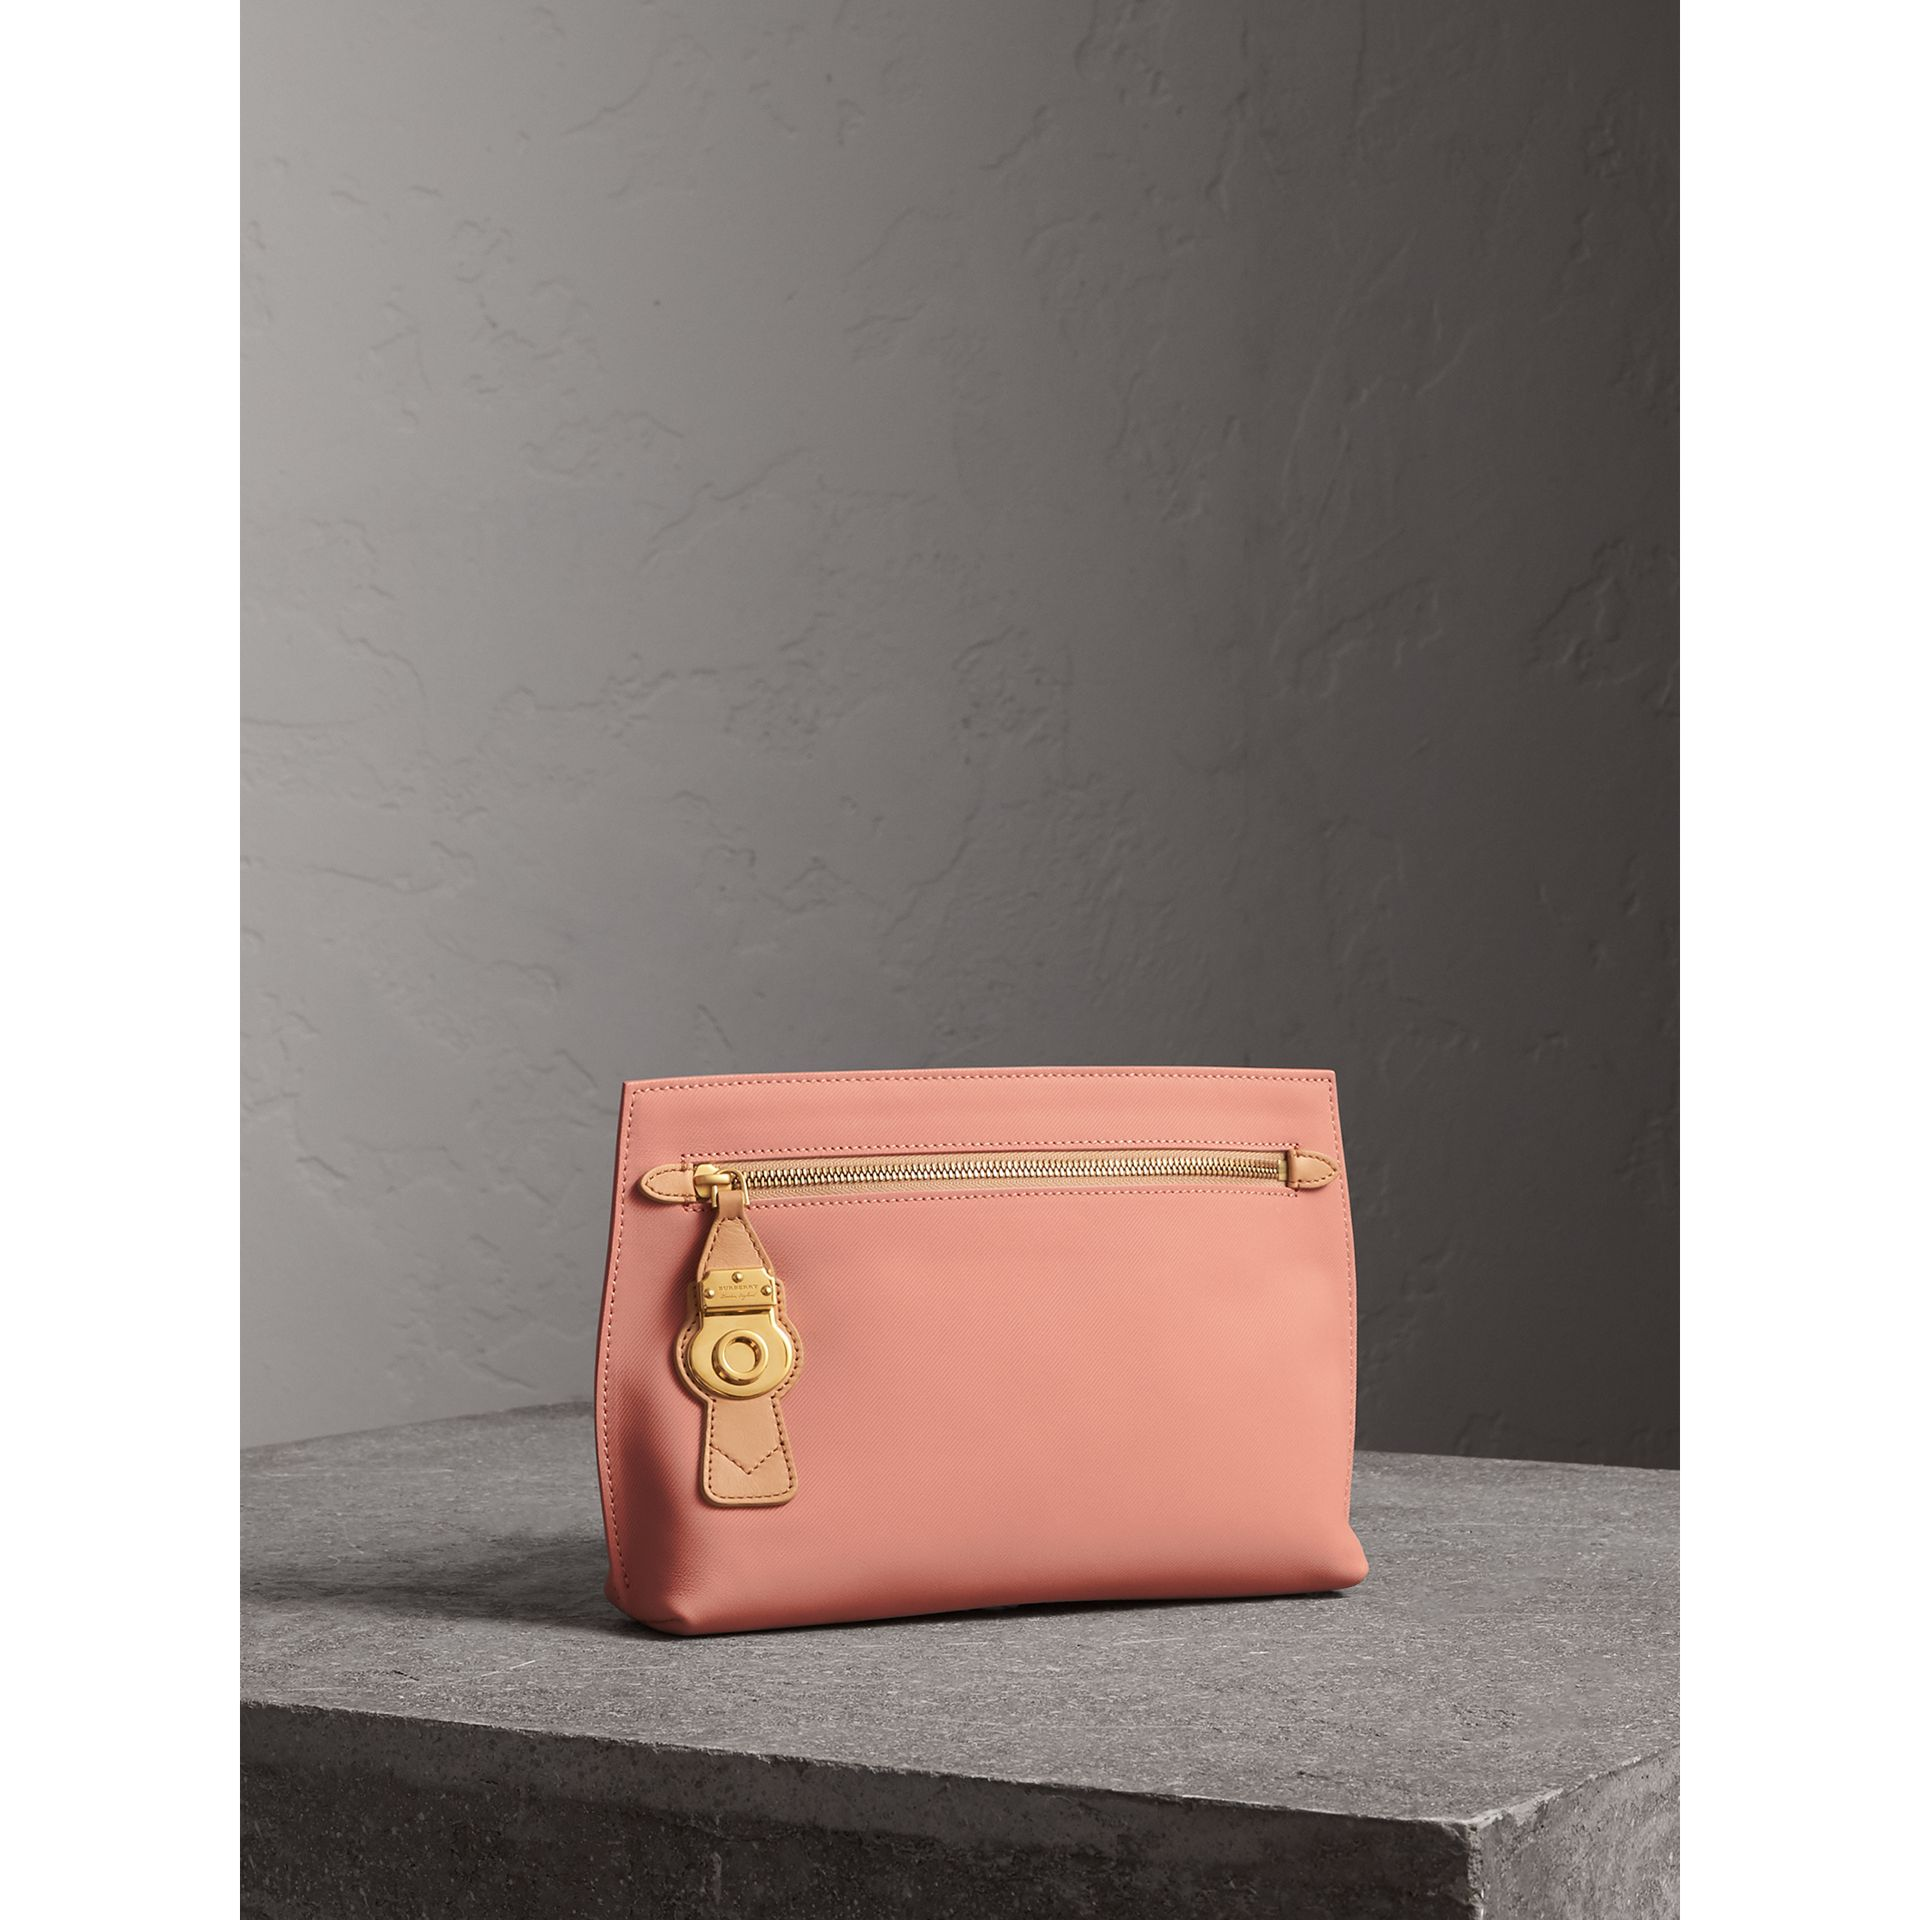 Two-tone Trench Leather Wristlet Pouch in Ash Rose/pale Clementine - Women | Burberry - gallery image 6